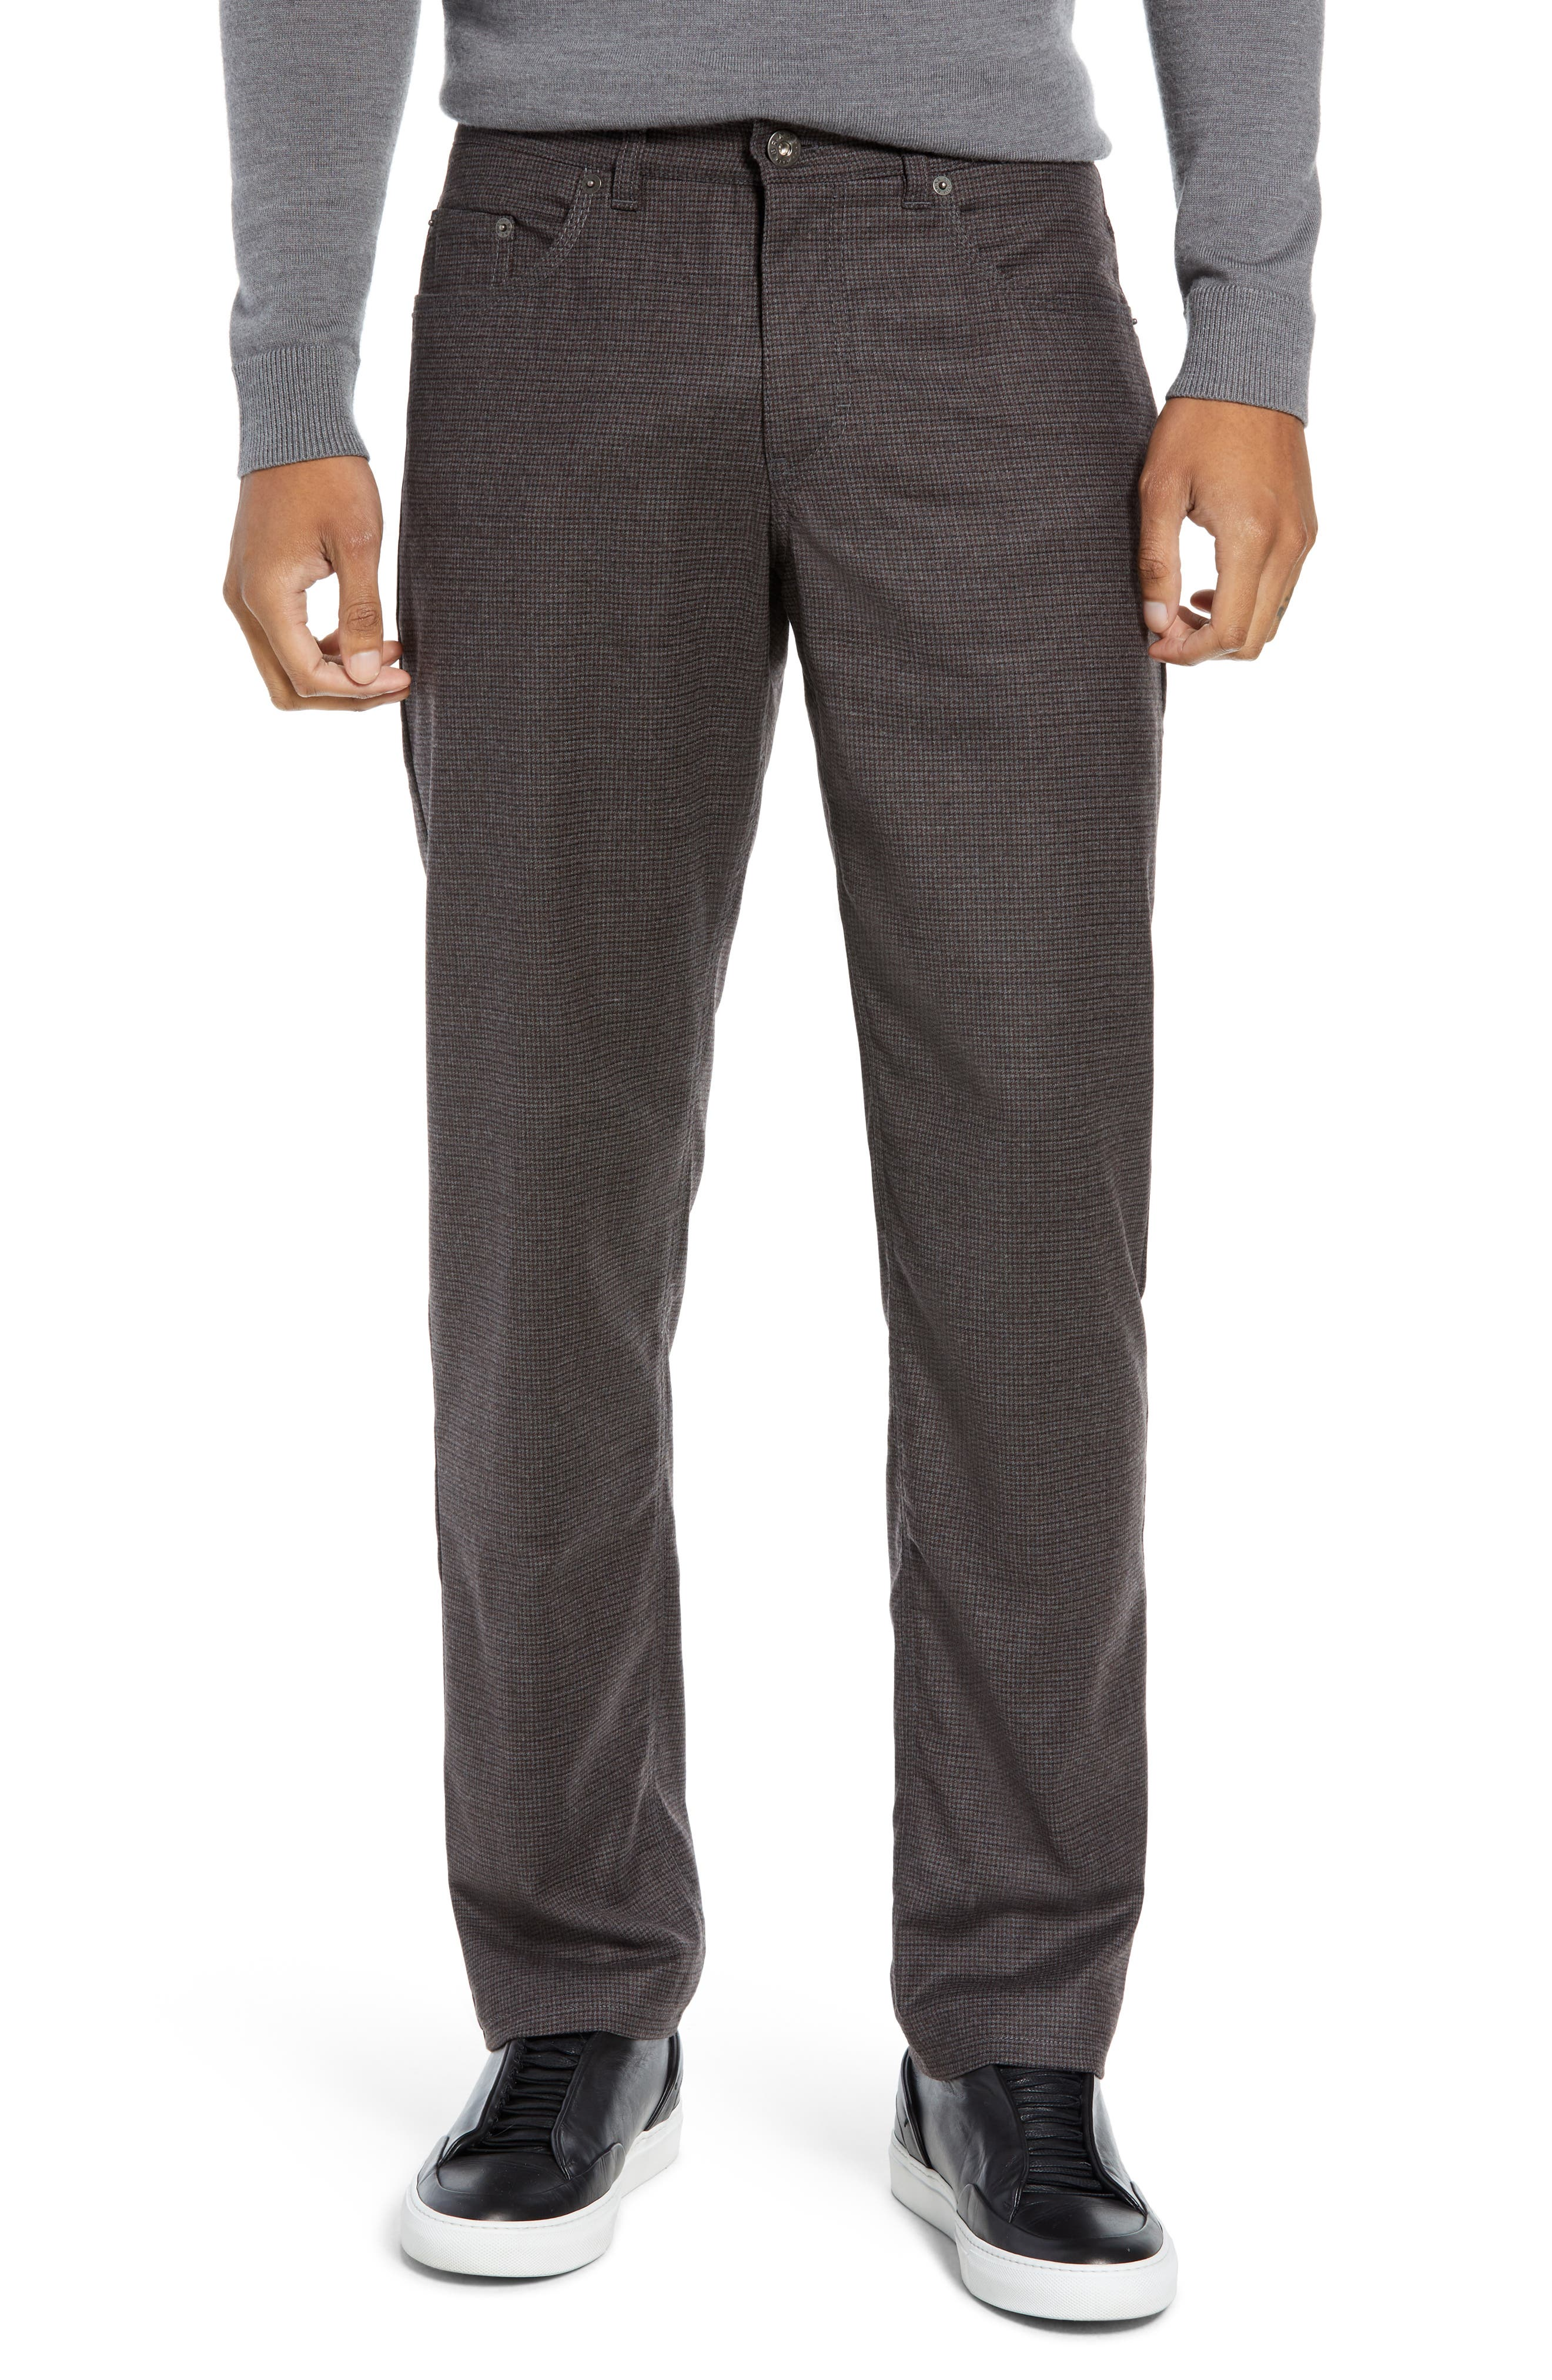 Cadiz Five Pocket Stretch Wool Trousers,                         Main,                         color, ANTHRACITE